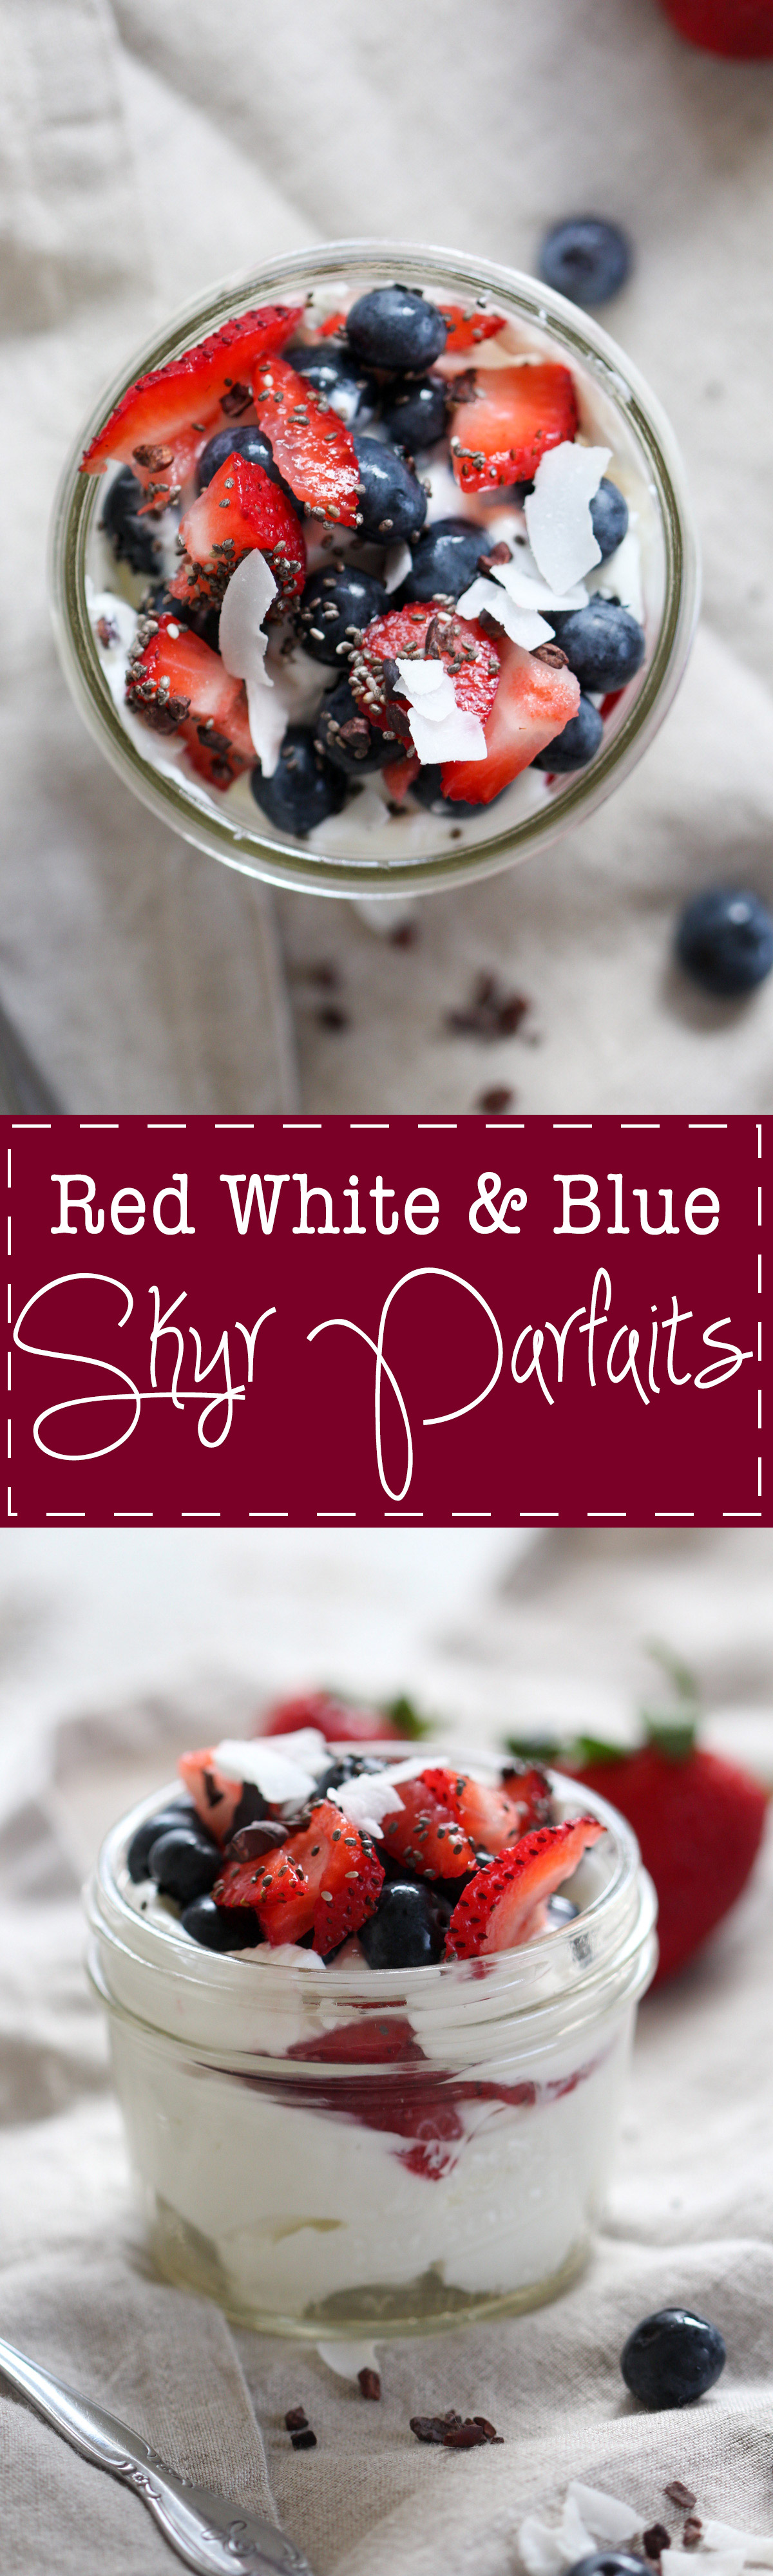 Red White and Blue Skyr Parfaits - A simple and festive Fourth of July treat! Skyr is Icelandic-style yogurt, very similar to Greek yogurt. It's always a perfect time to try something new! Skyr, berries, and healthy toppings.   rootsandradishes.com